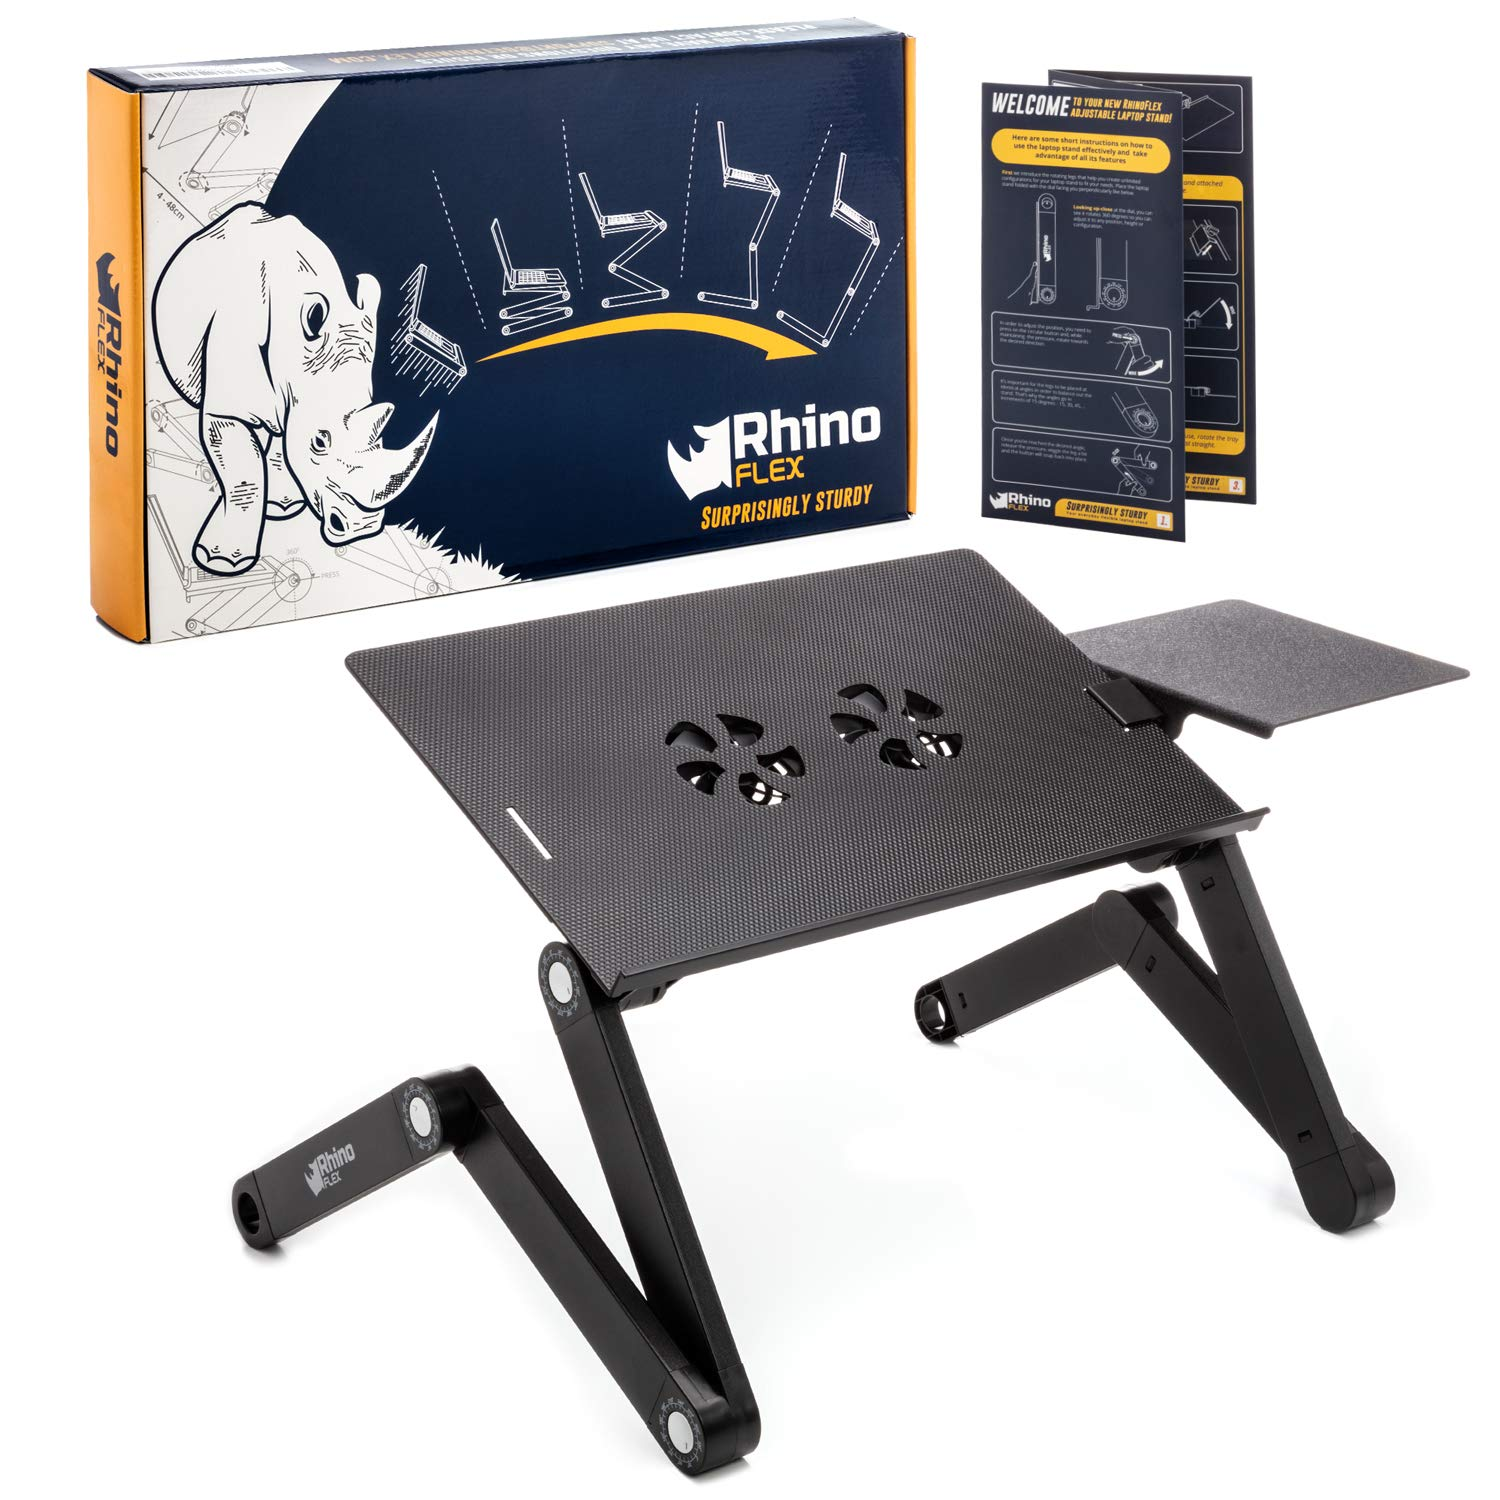 Adjustable Laptop Stand - Use It as a Foldable Standing Desk at The Office, Portable Computer Holder for Writing, Cozy Desk in Bed or on The Sofa - Laptop Table with Cooling Fans - Great as a Gift by RhinoFlex